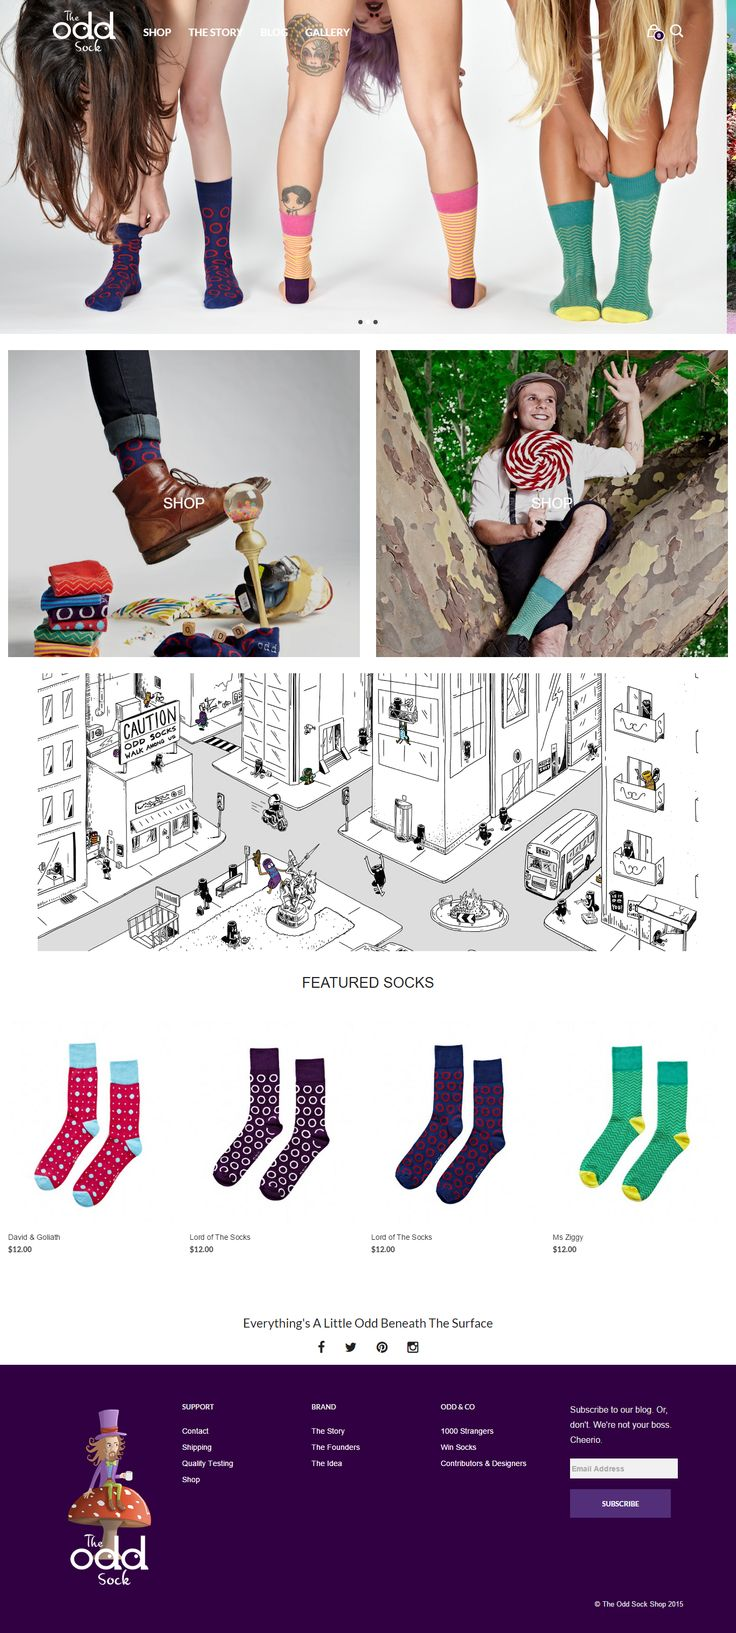 theoddsock.com.au, a cheerful site built with Mr Tailor.  http://themeforest.net/item/mr-tailor-responsive-woocommerce-theme/7292110?&utm_source=pinterest.com&utm_medium=social&utm_content=odd-sock&utm_campaign=showcase #socks #crazy #funky #wordpress #website #creativity #ecommerce